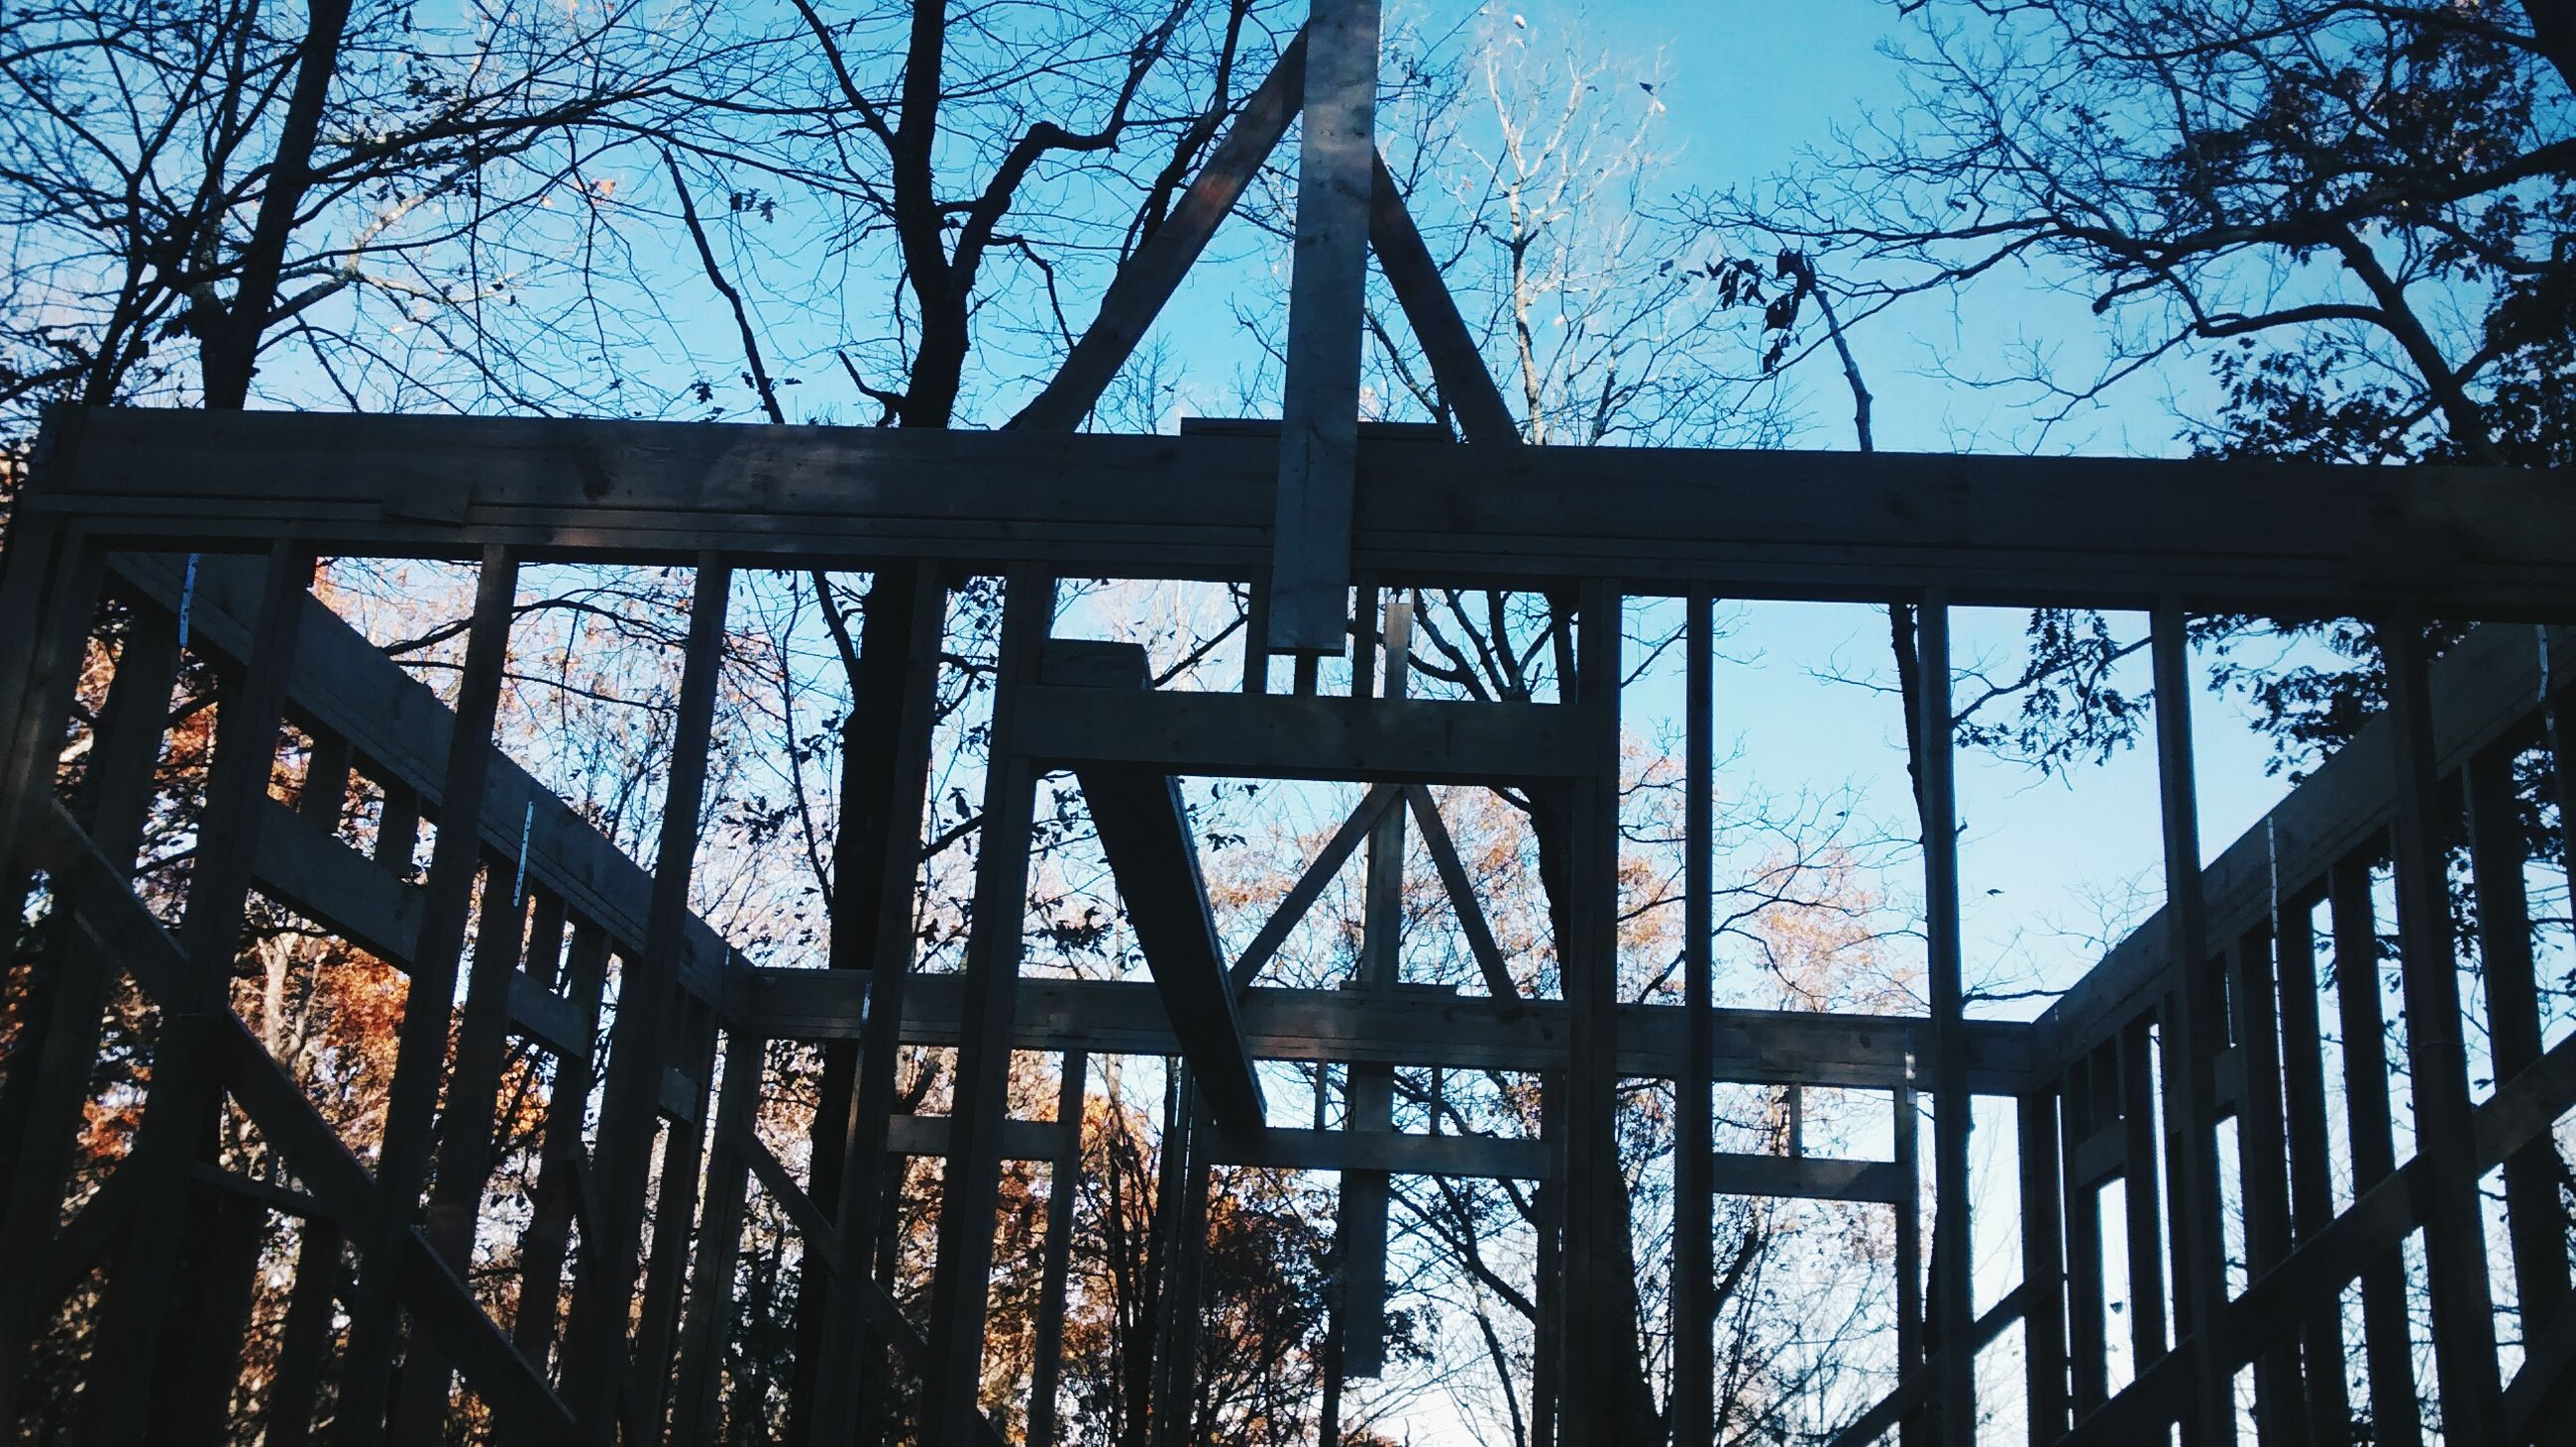 low angle view, built structure, architecture, tree, bare tree, connection, bridge - man made structure, sky, silhouette, branch, metal, engineering, dusk, no people, bridge, outdoors, building exterior, day, nature, blue